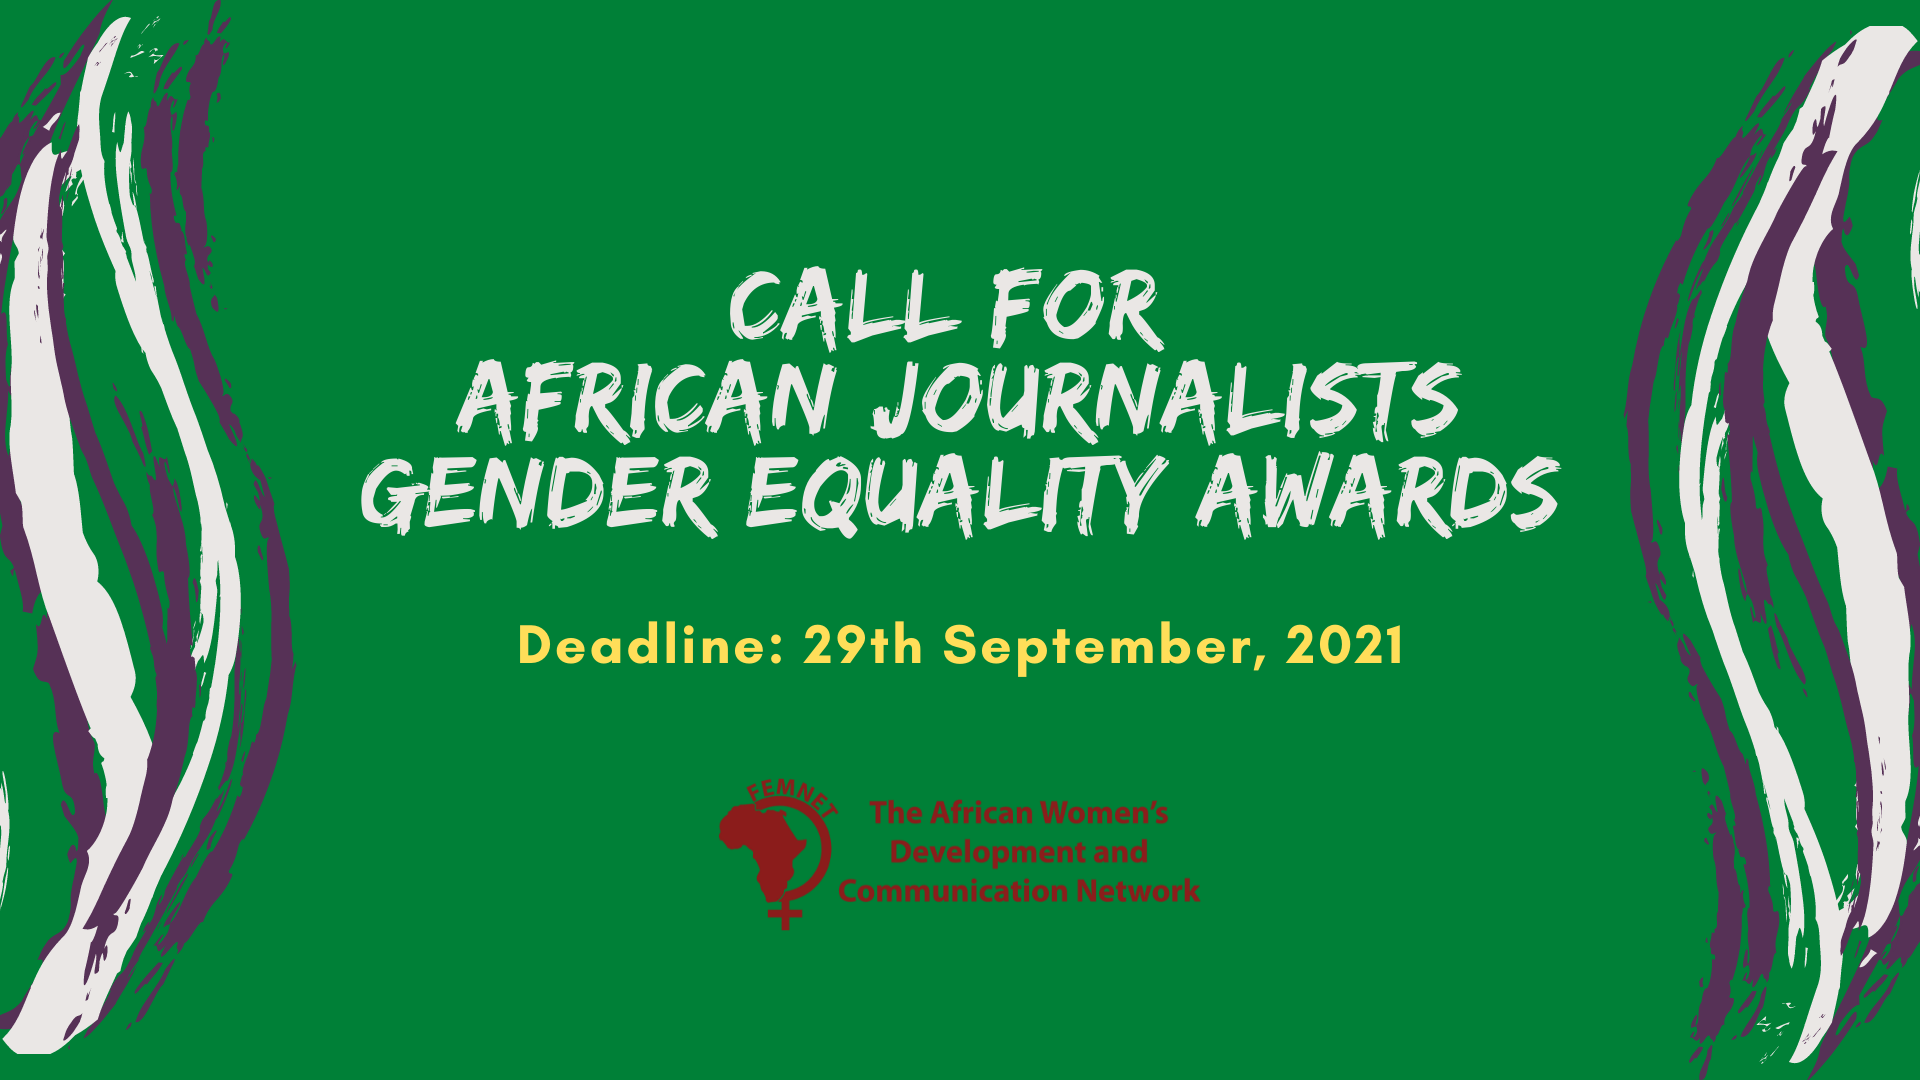 2021 African Journalists Gender Equality Awards